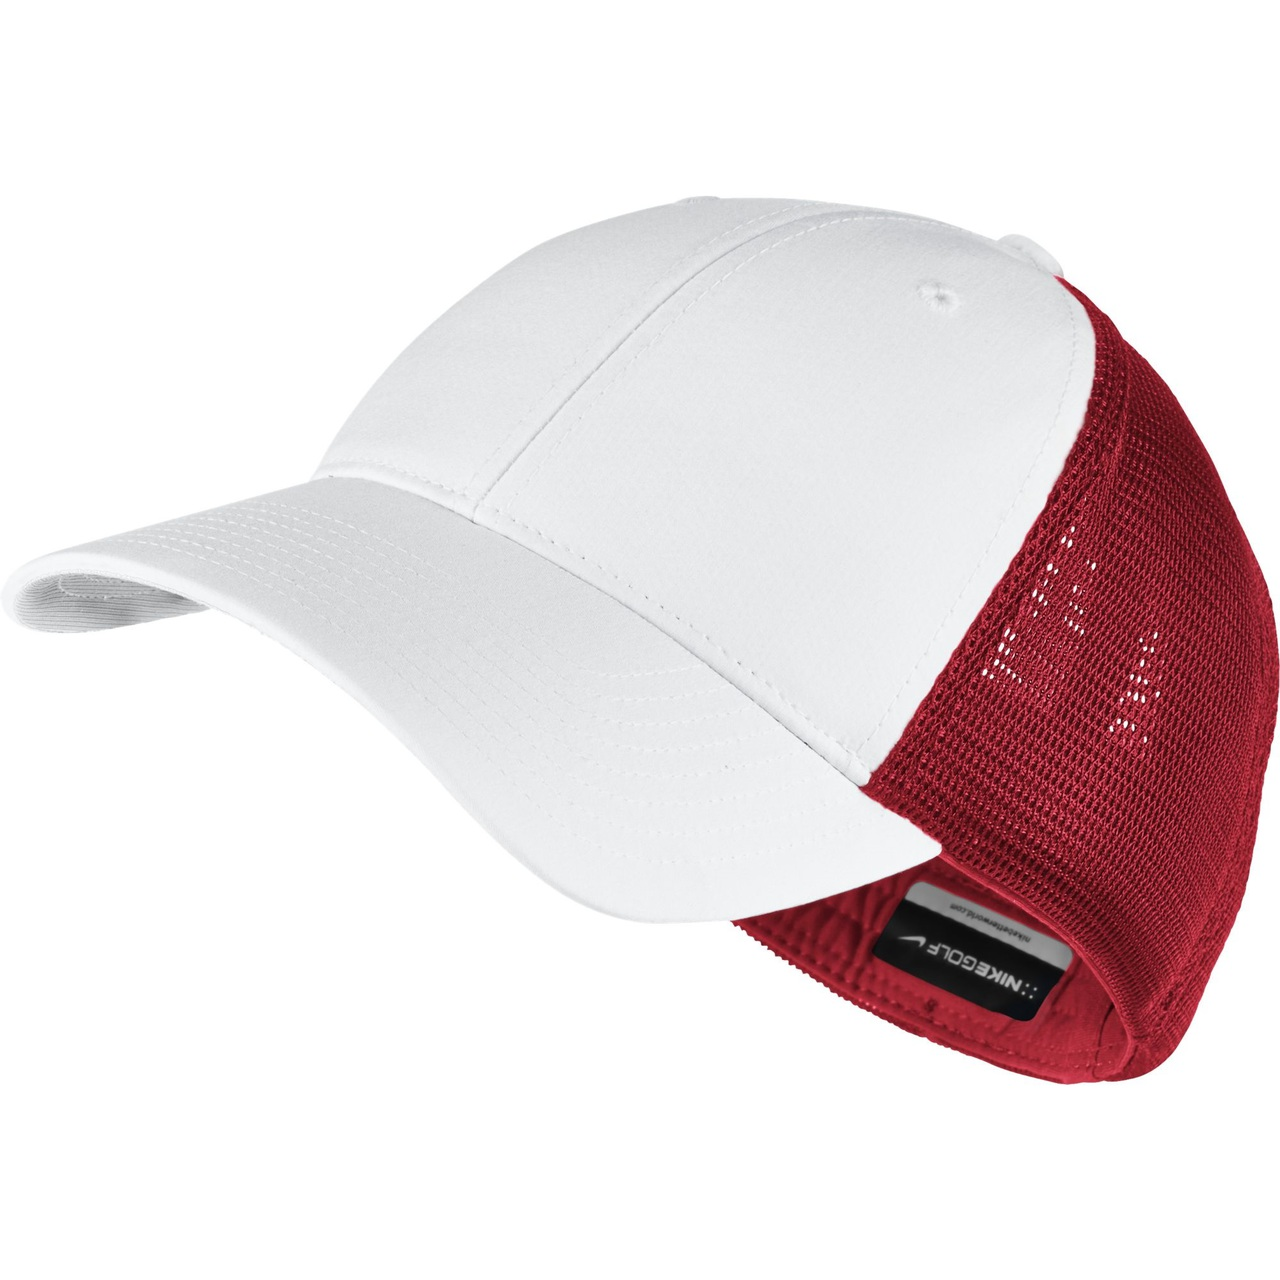 Nike Golf Legacy 91 Mesh Custom Hat (Photo Blue White Anthracite) S M -  University Red White Anthracite 0be831a9211